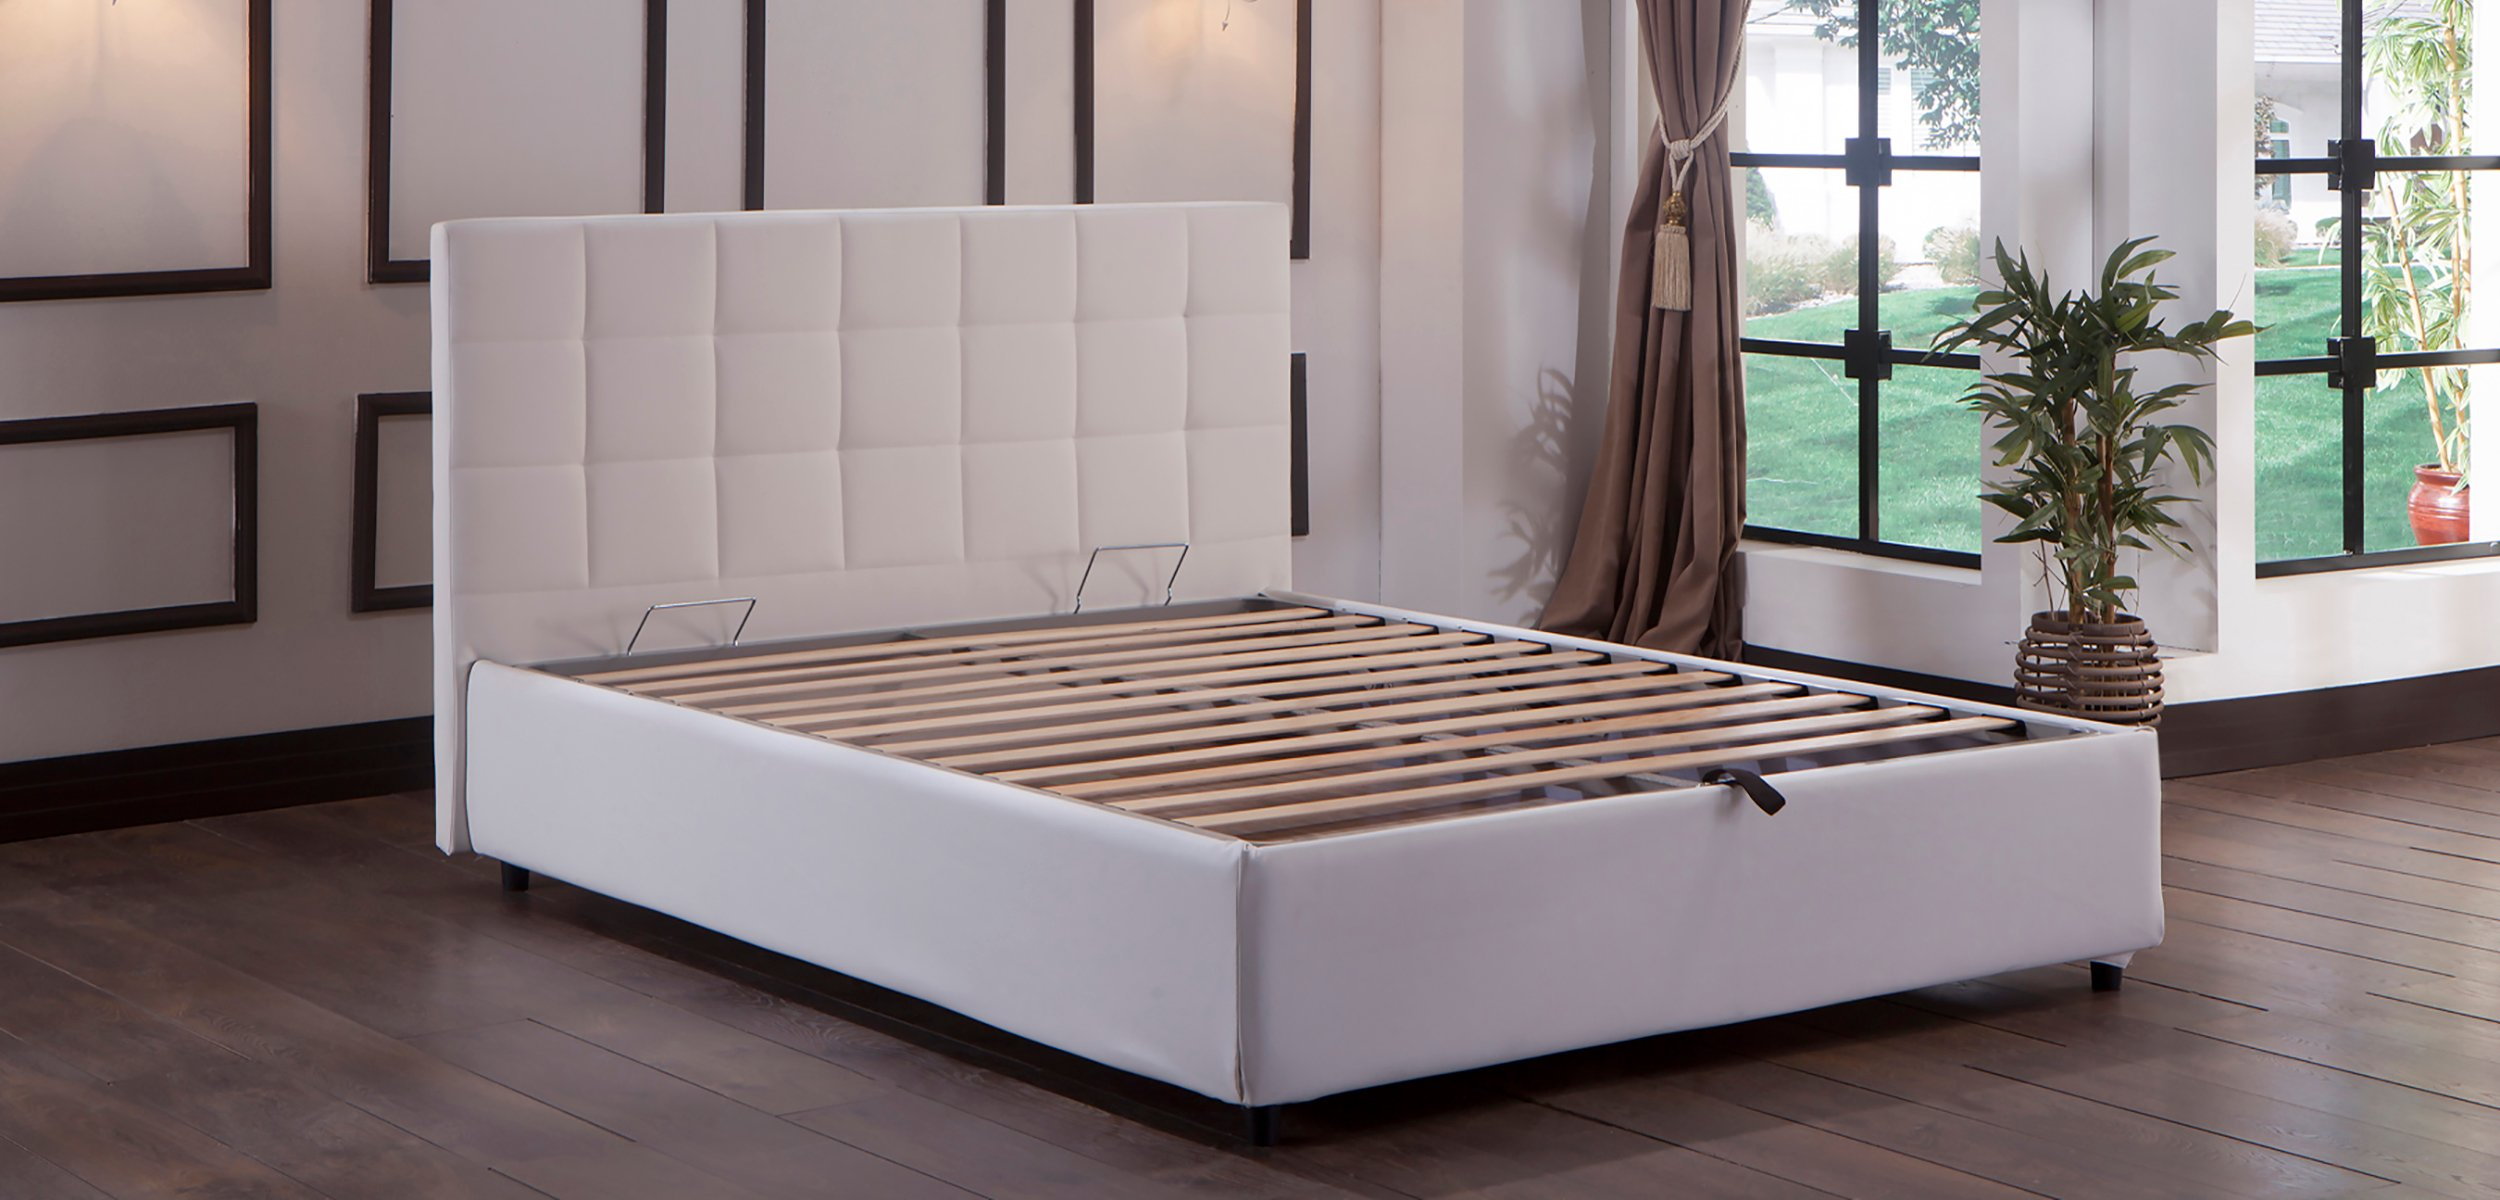 Charmant Manila Platform Bed W/Headboard Queen Size Escudo White By Istikbal (Sunset)